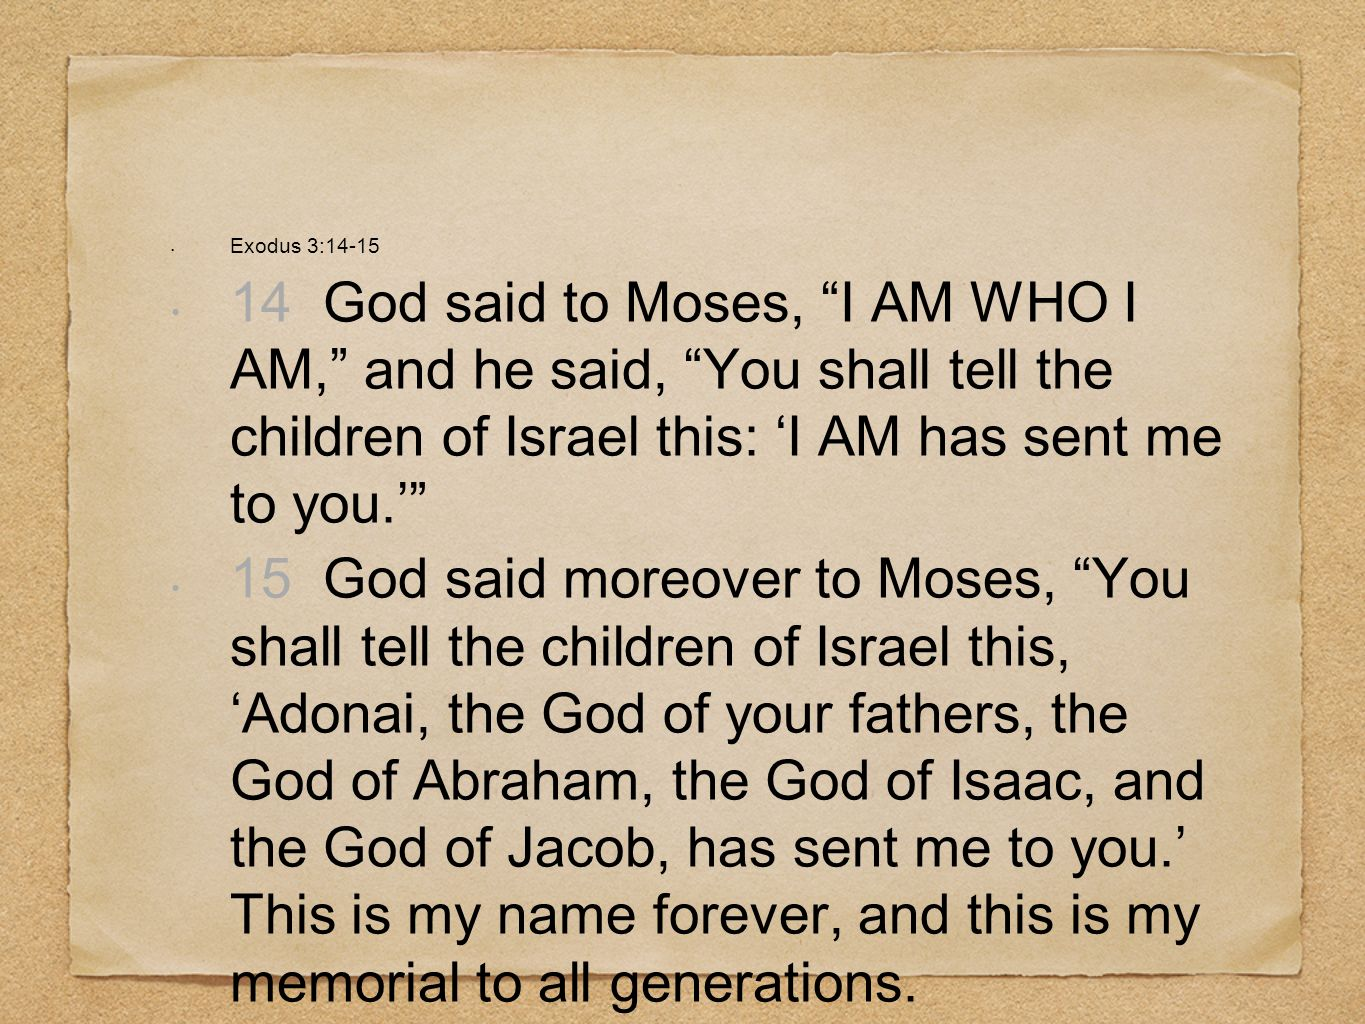 Exodus 3:14-15 14 God said to Moses, I AM WHO I AM, and he said, You shall tell the children of Israel this: 'I AM has sent me to you.'